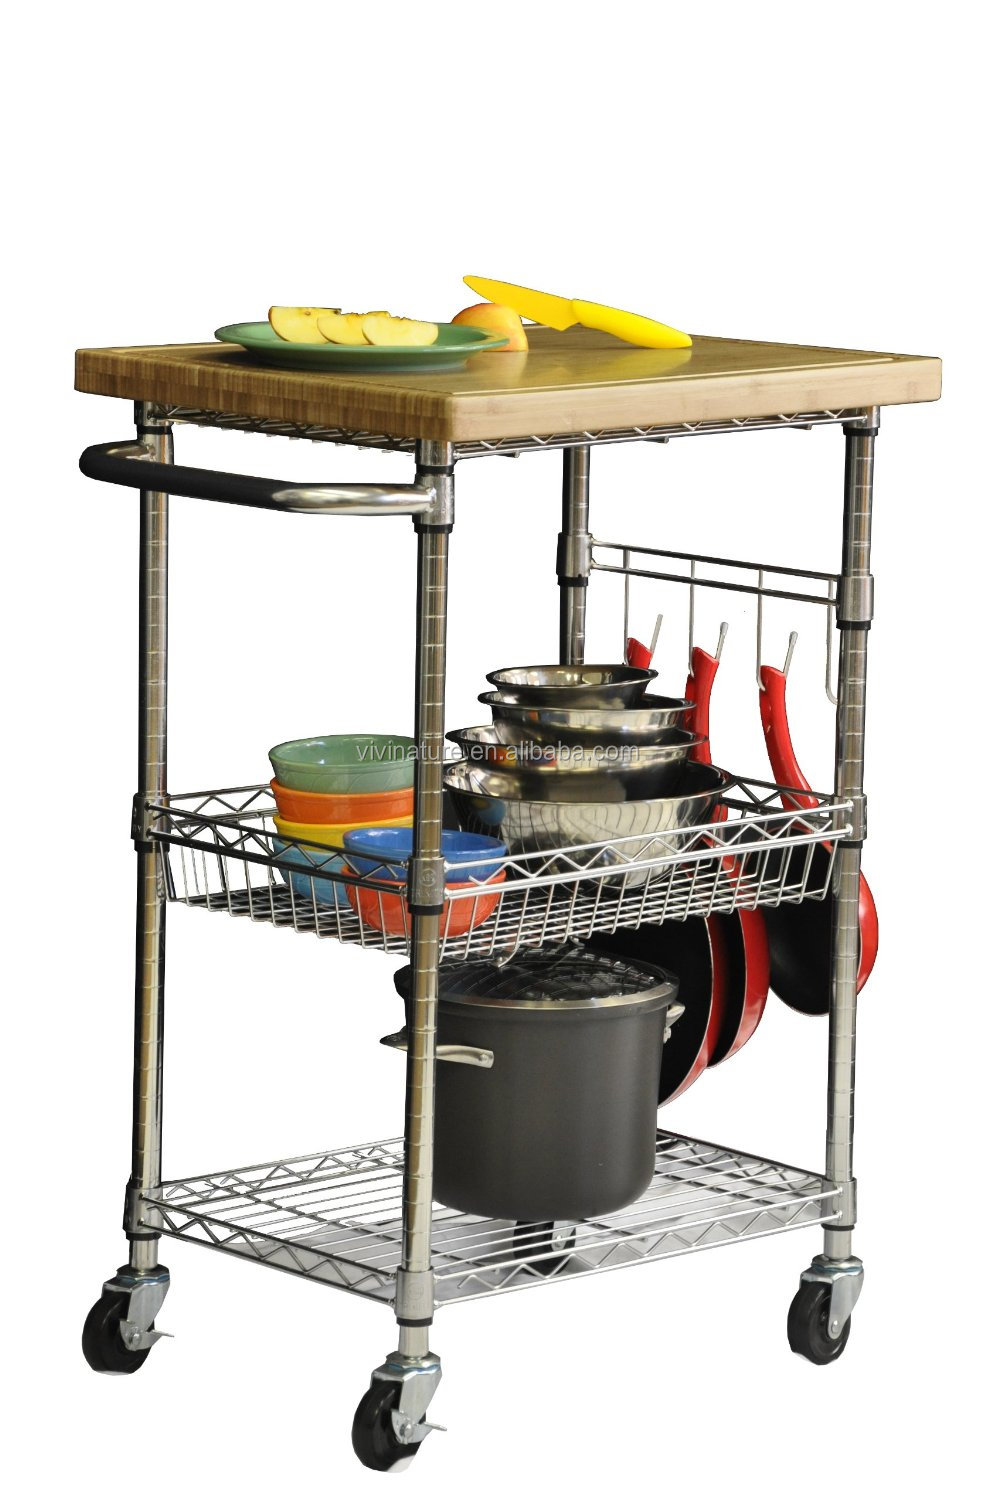 rolling kitchen carts building outdoor tier metal storage cart on wheels 26 5 great organizer for